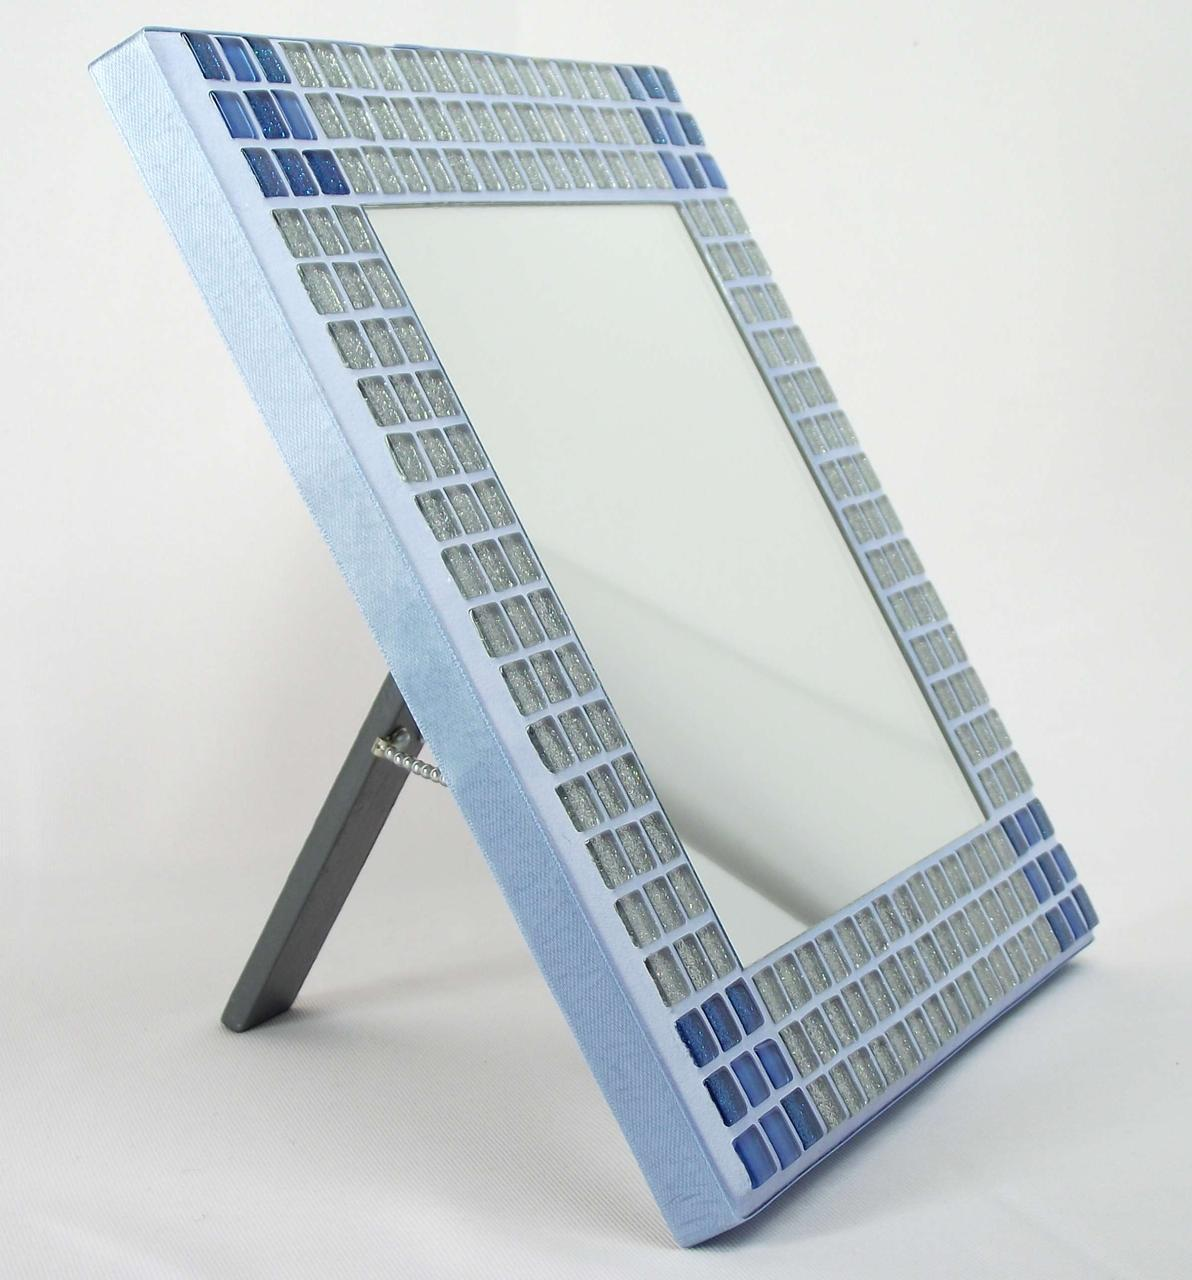 Silver-Blue Glitter Corners 23cm Mosaic Mirror with Stand